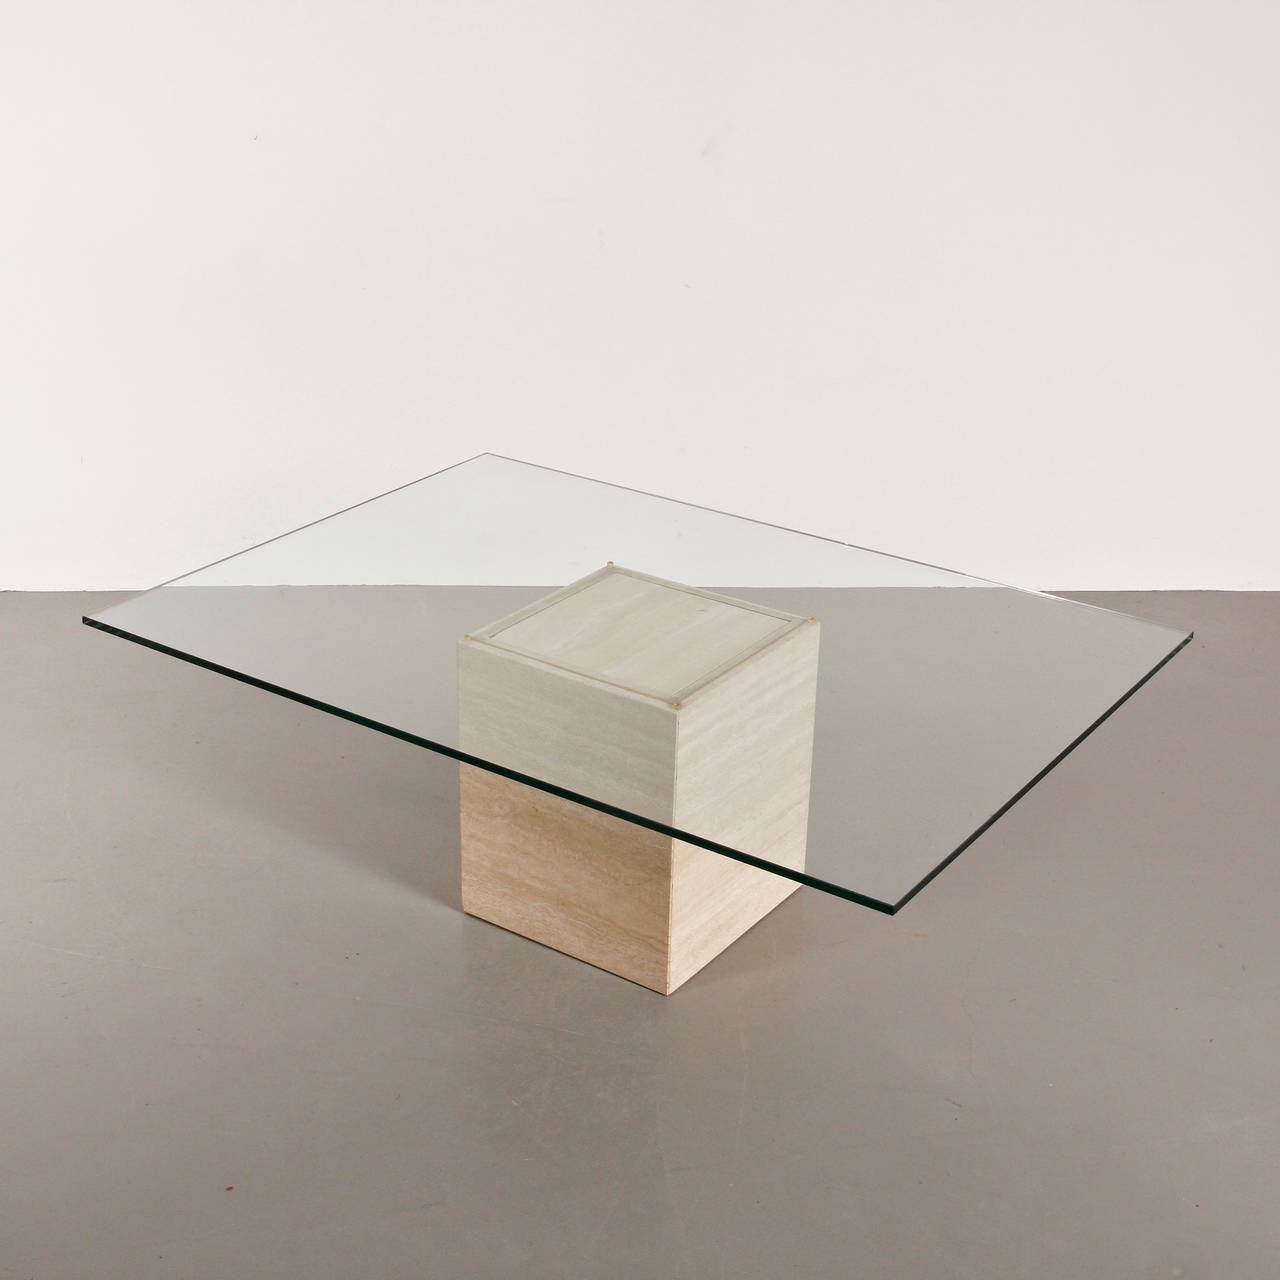 Glass and travertine coffee table by roger vanhevel belgium for glass and travertine coffee table by roger vanhevel belgium 3 geotapseo Image collections